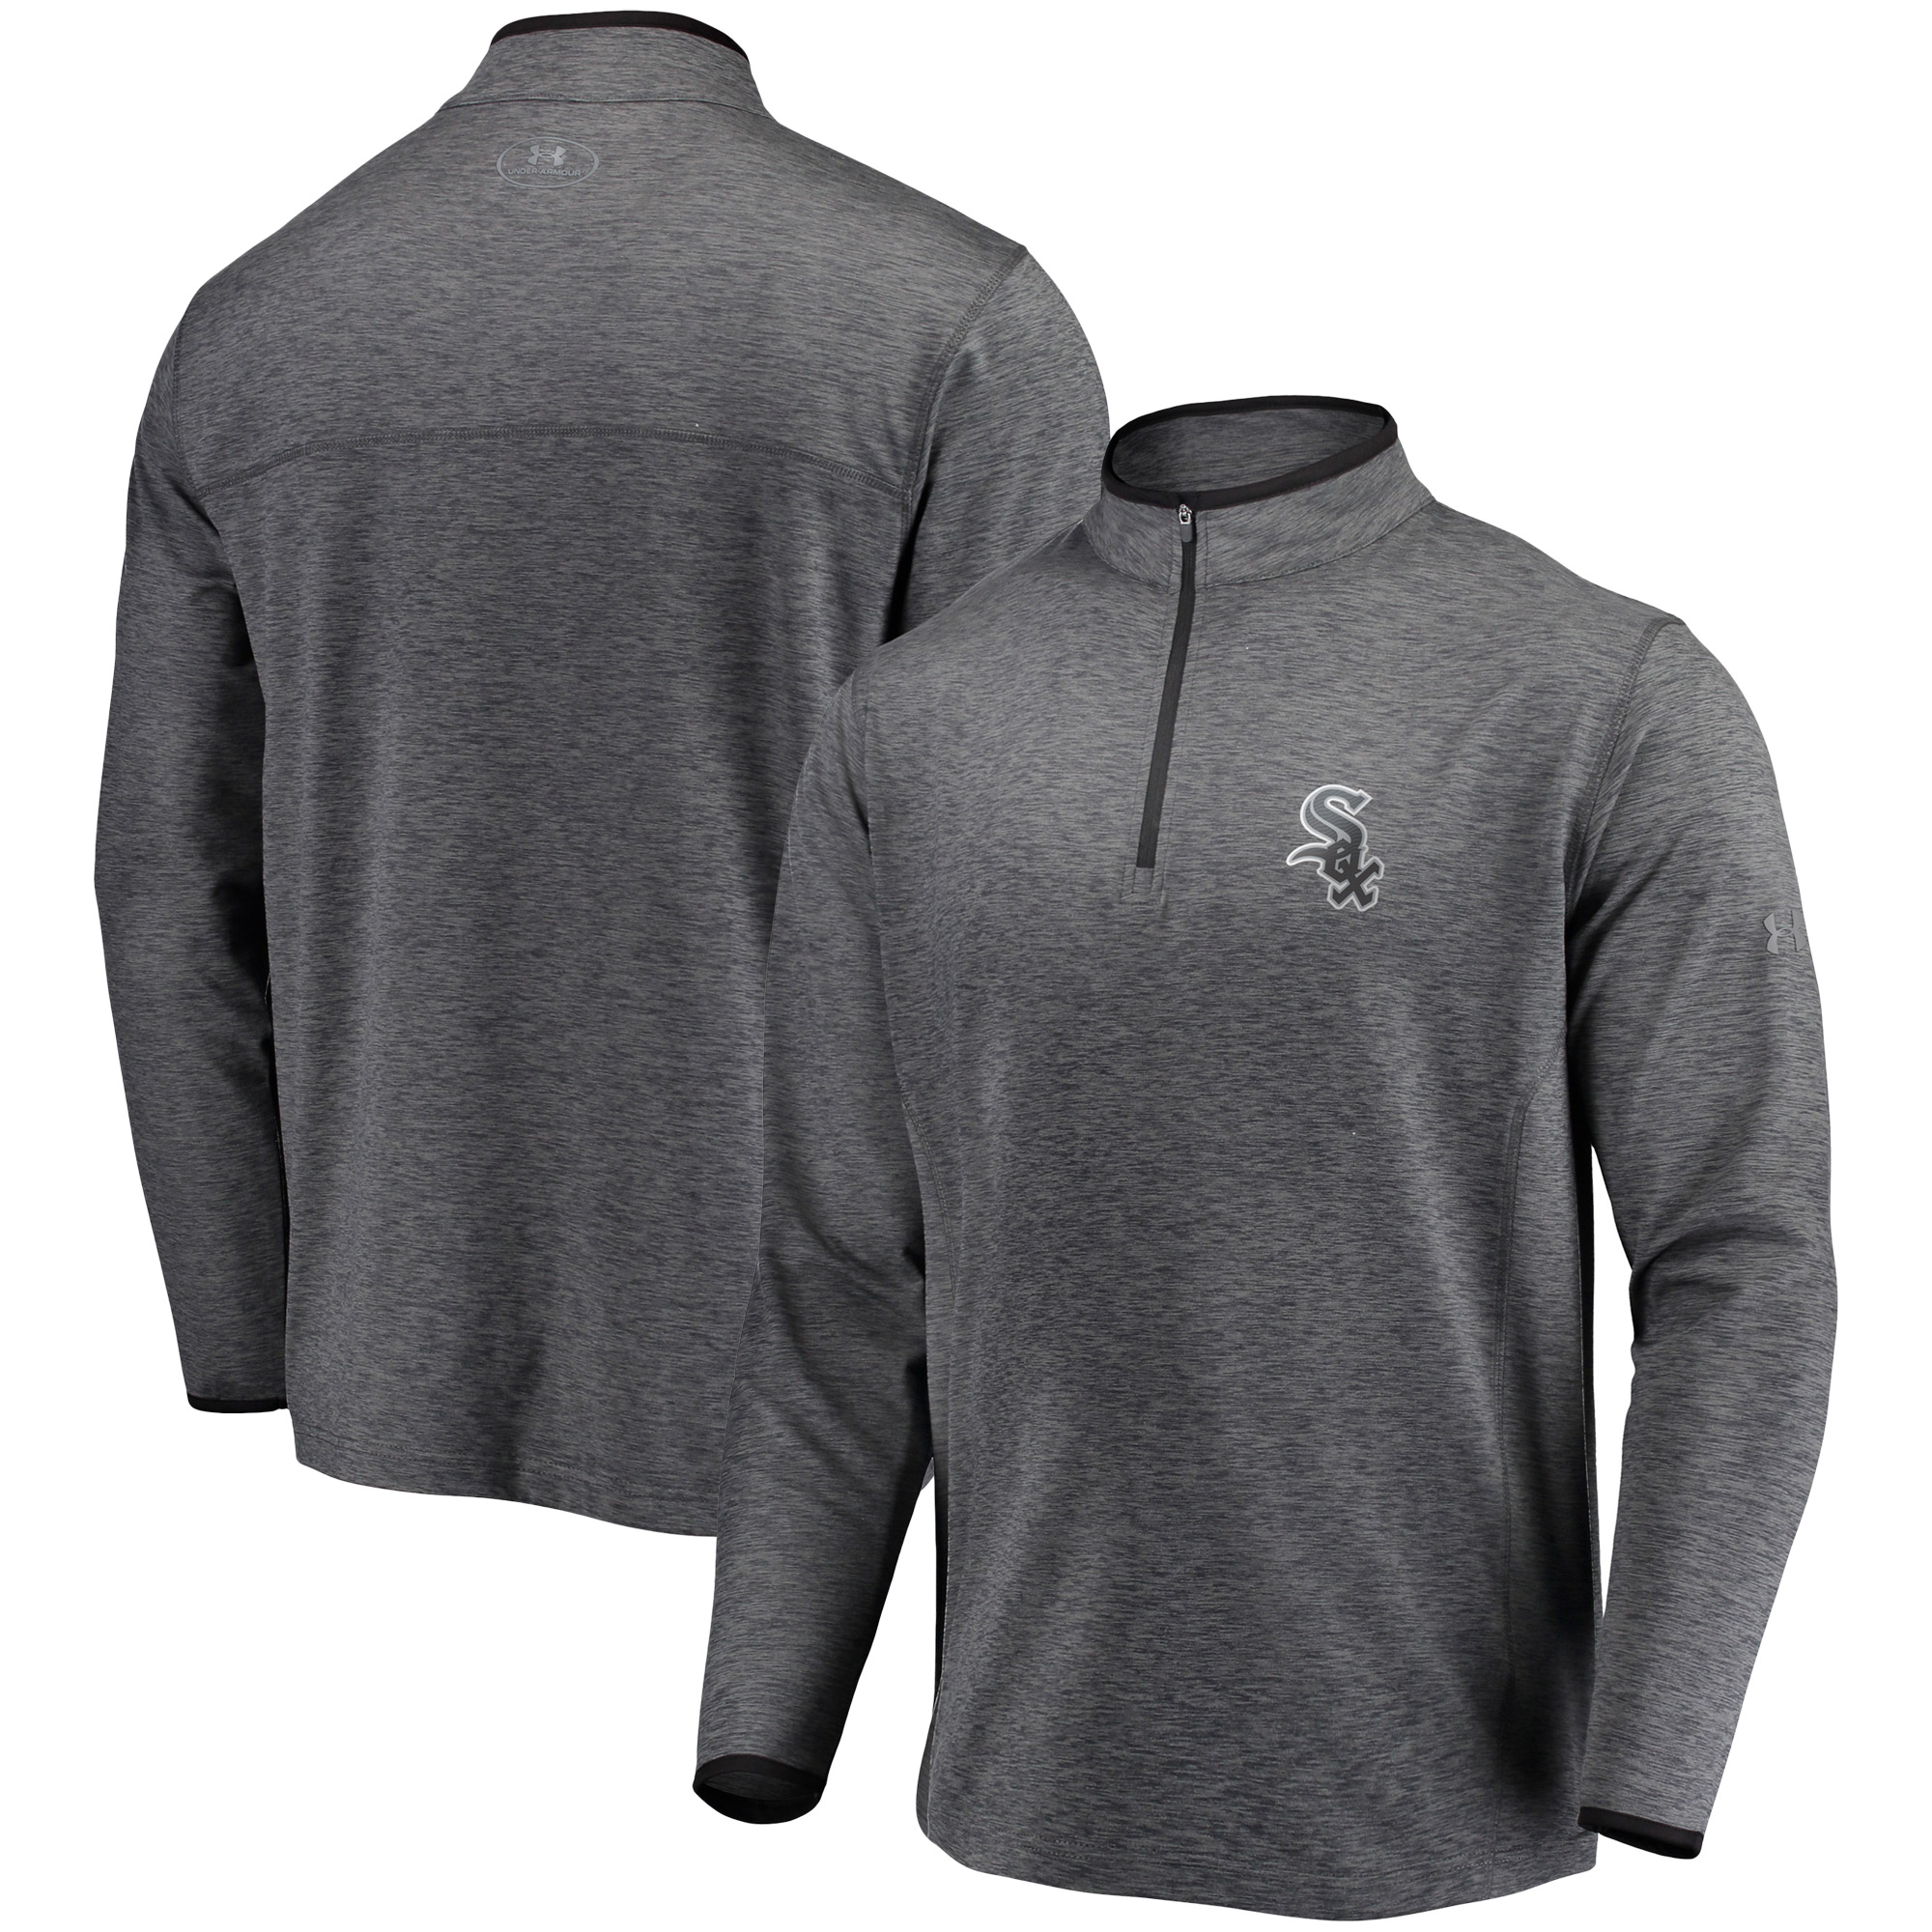 Chicago White Sox Under Armour Stretch Reflective Logo Performance Quarter-Zip Pullover Jacket - Heathered Charcoal